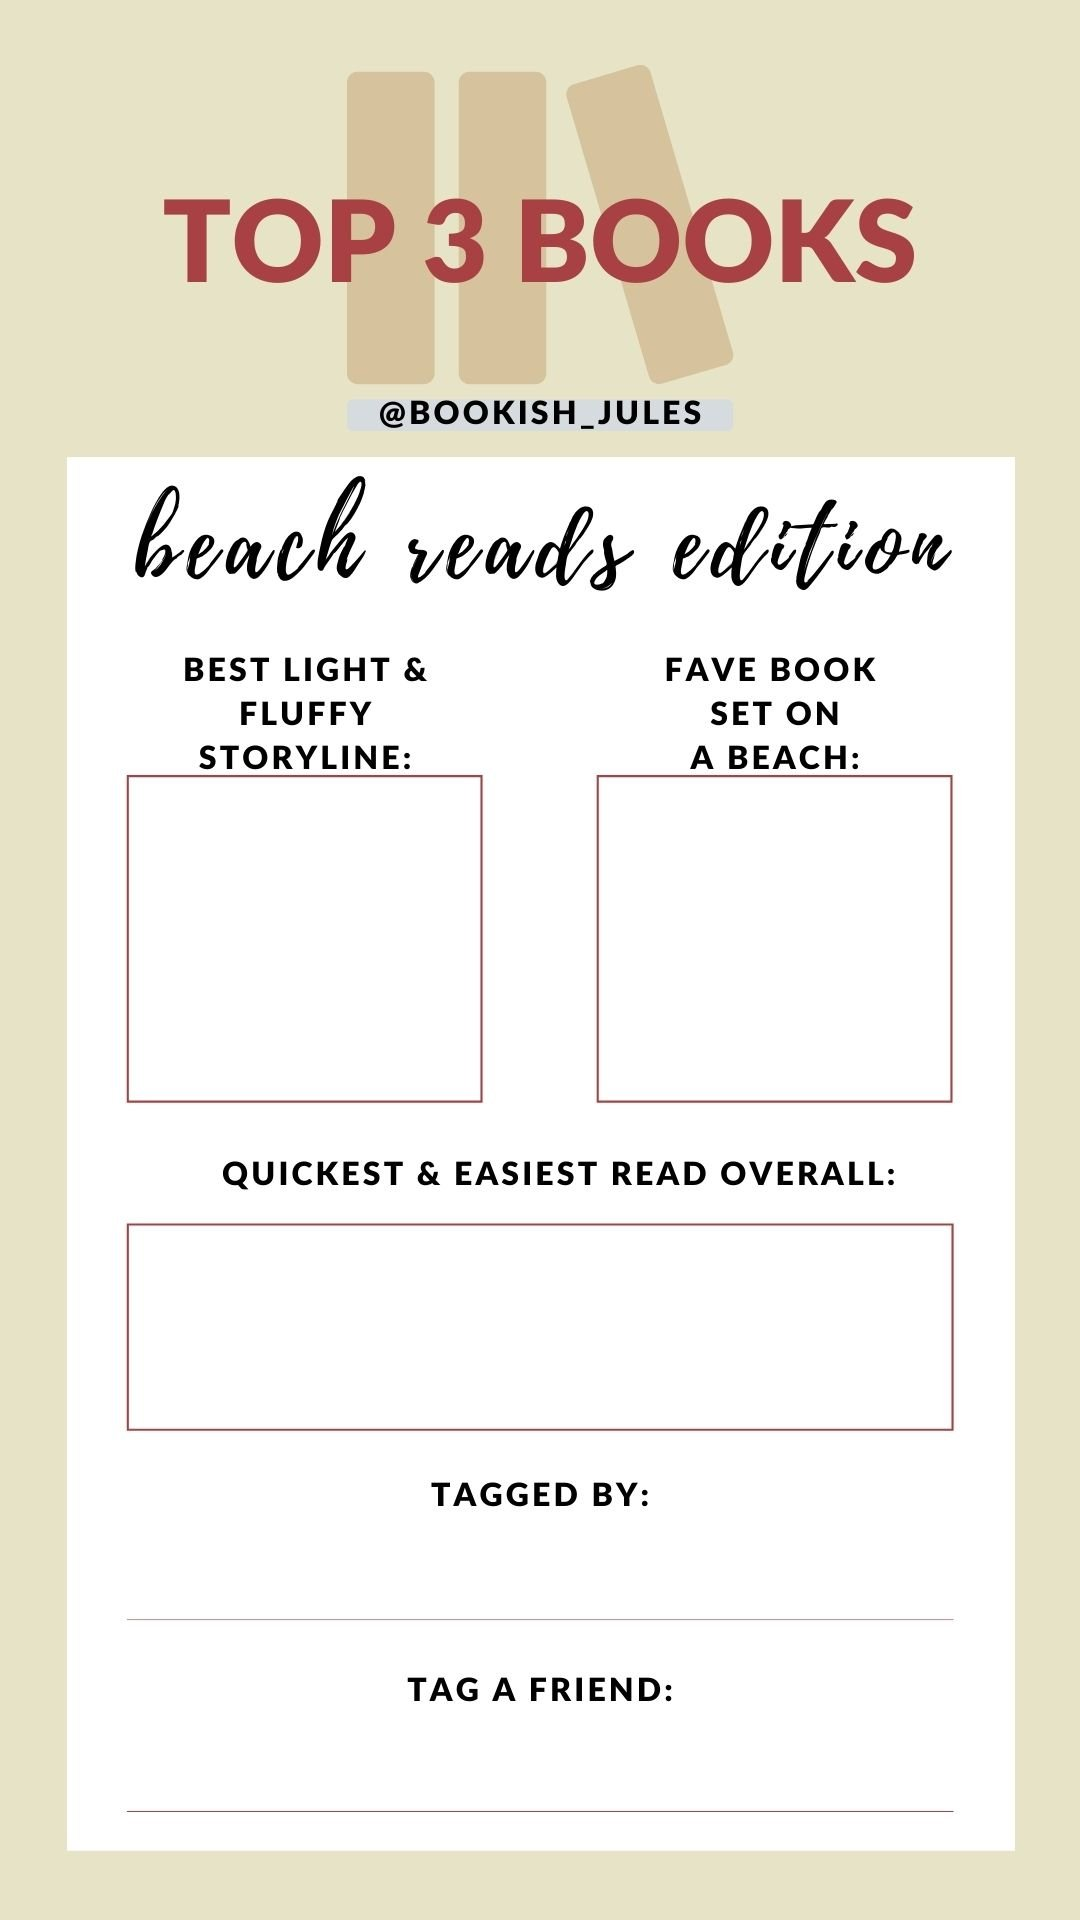 top 3 books beach reads edition